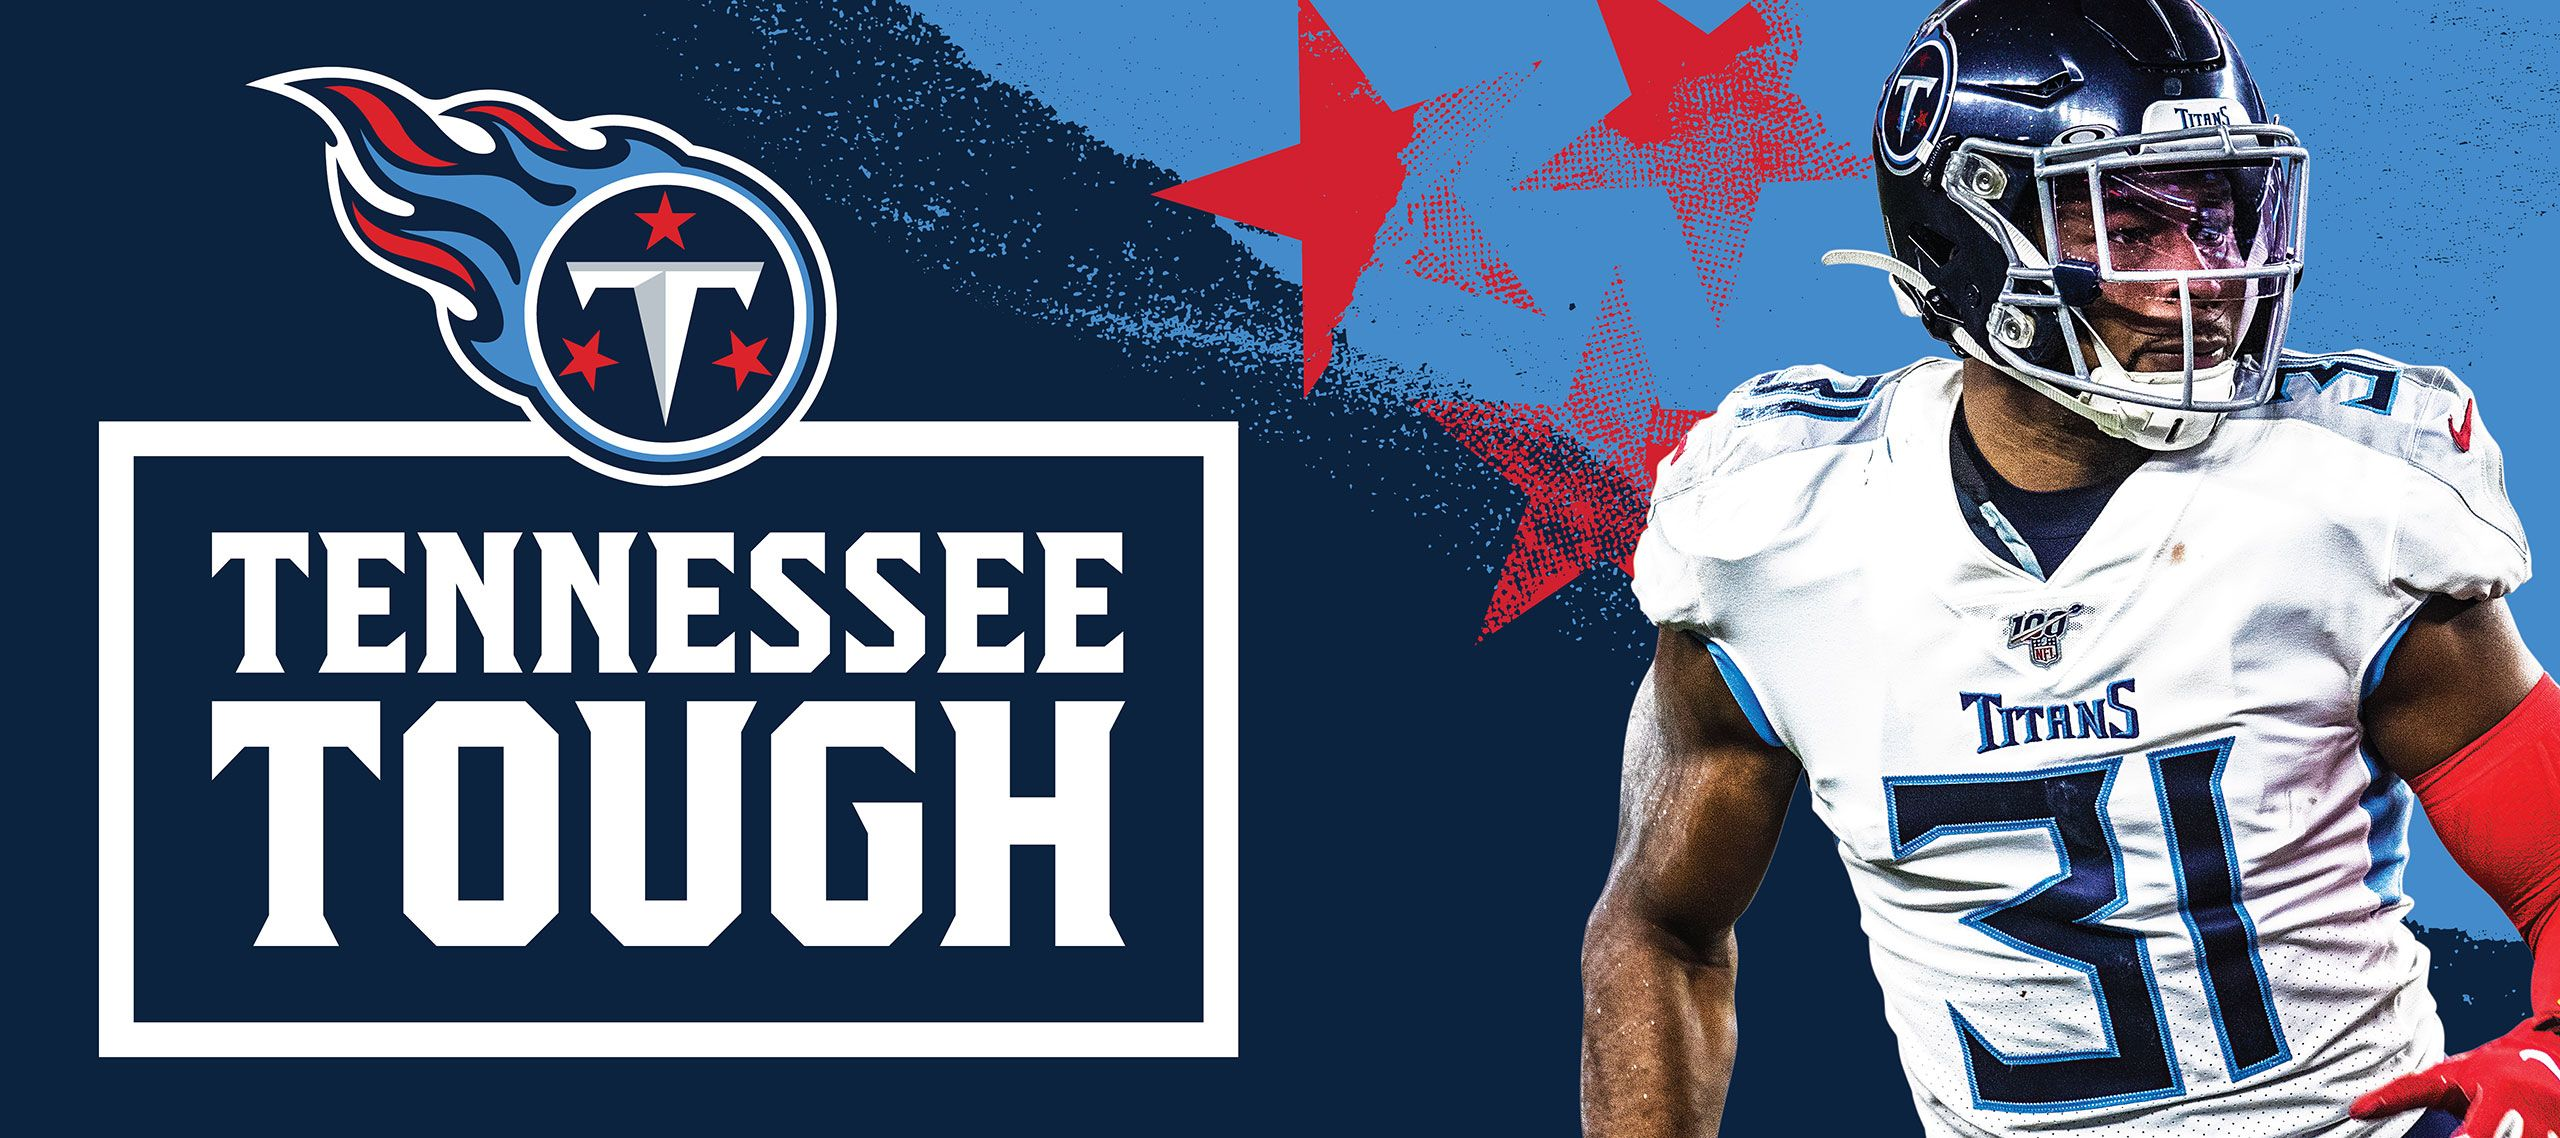 2020-tennessee-tough